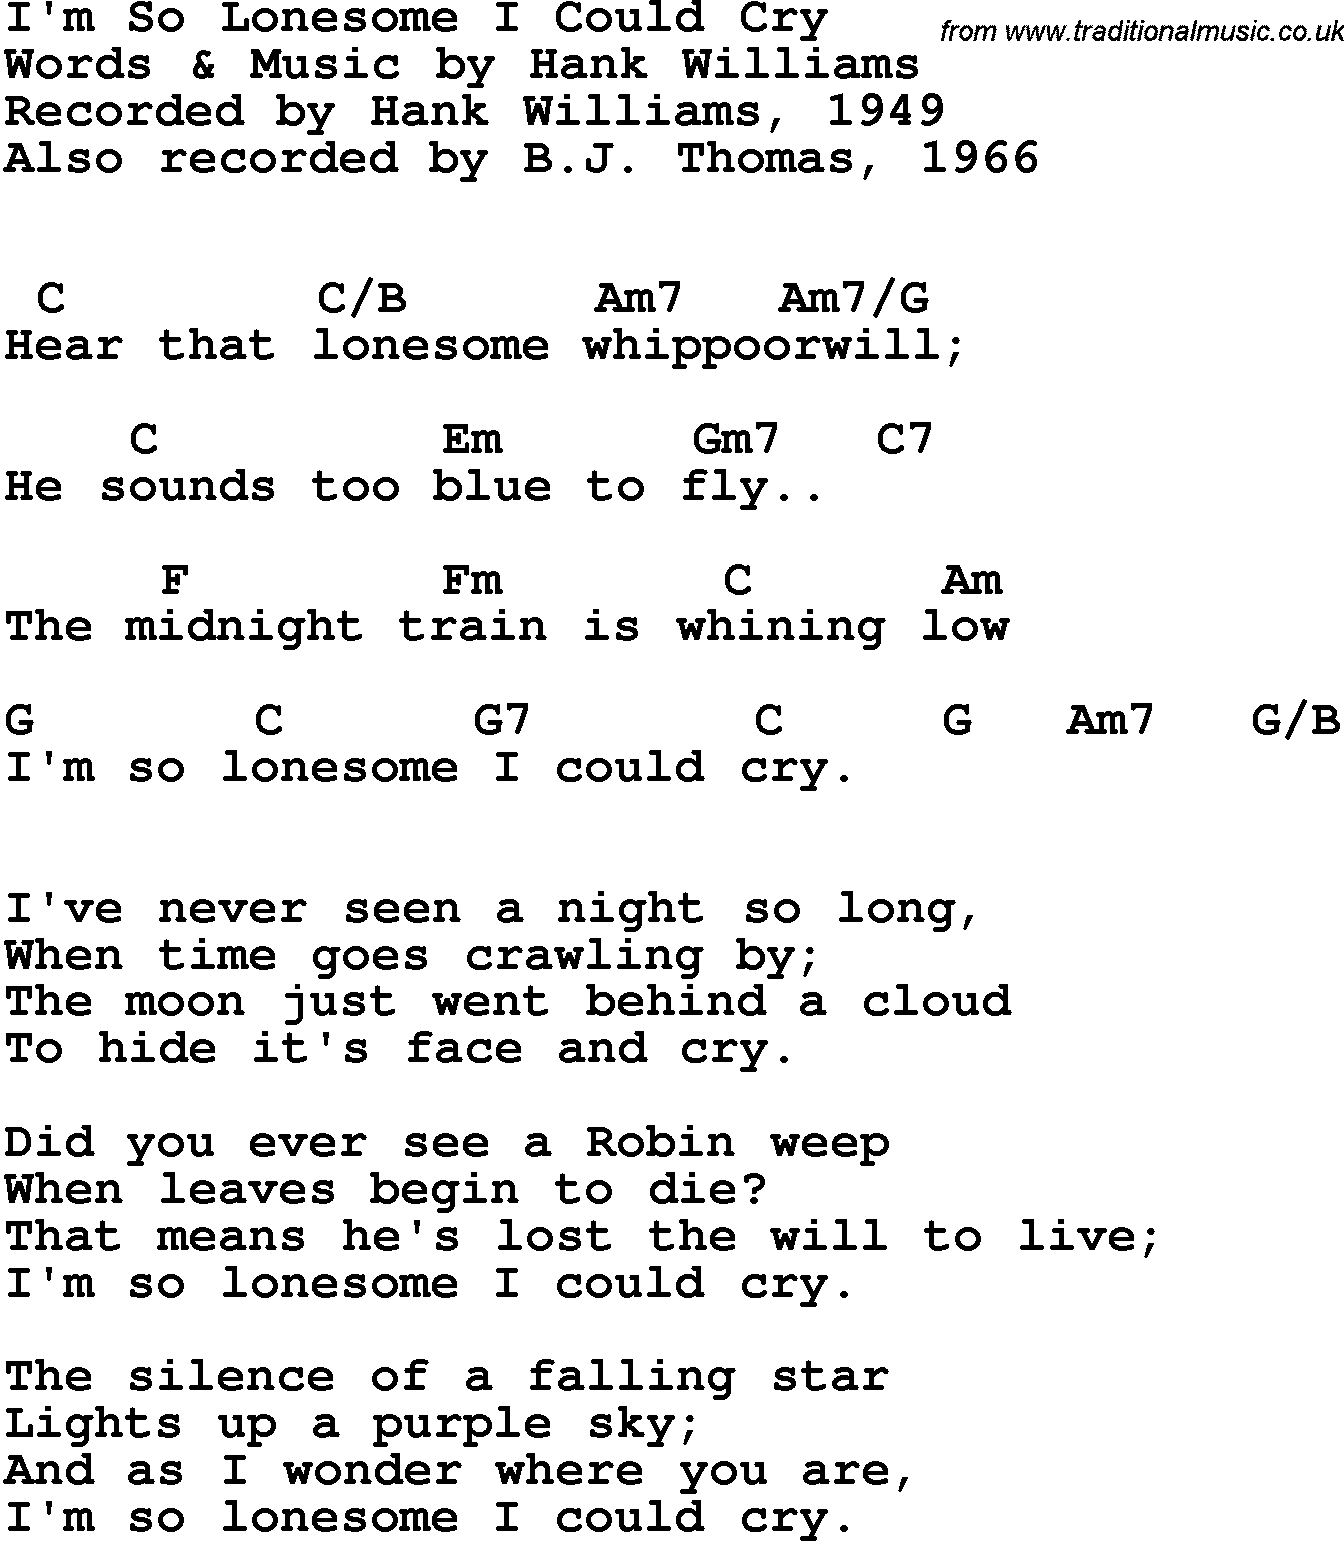 Song Lyrics With Guitar Chords For Im So Lonesome I Could Cry